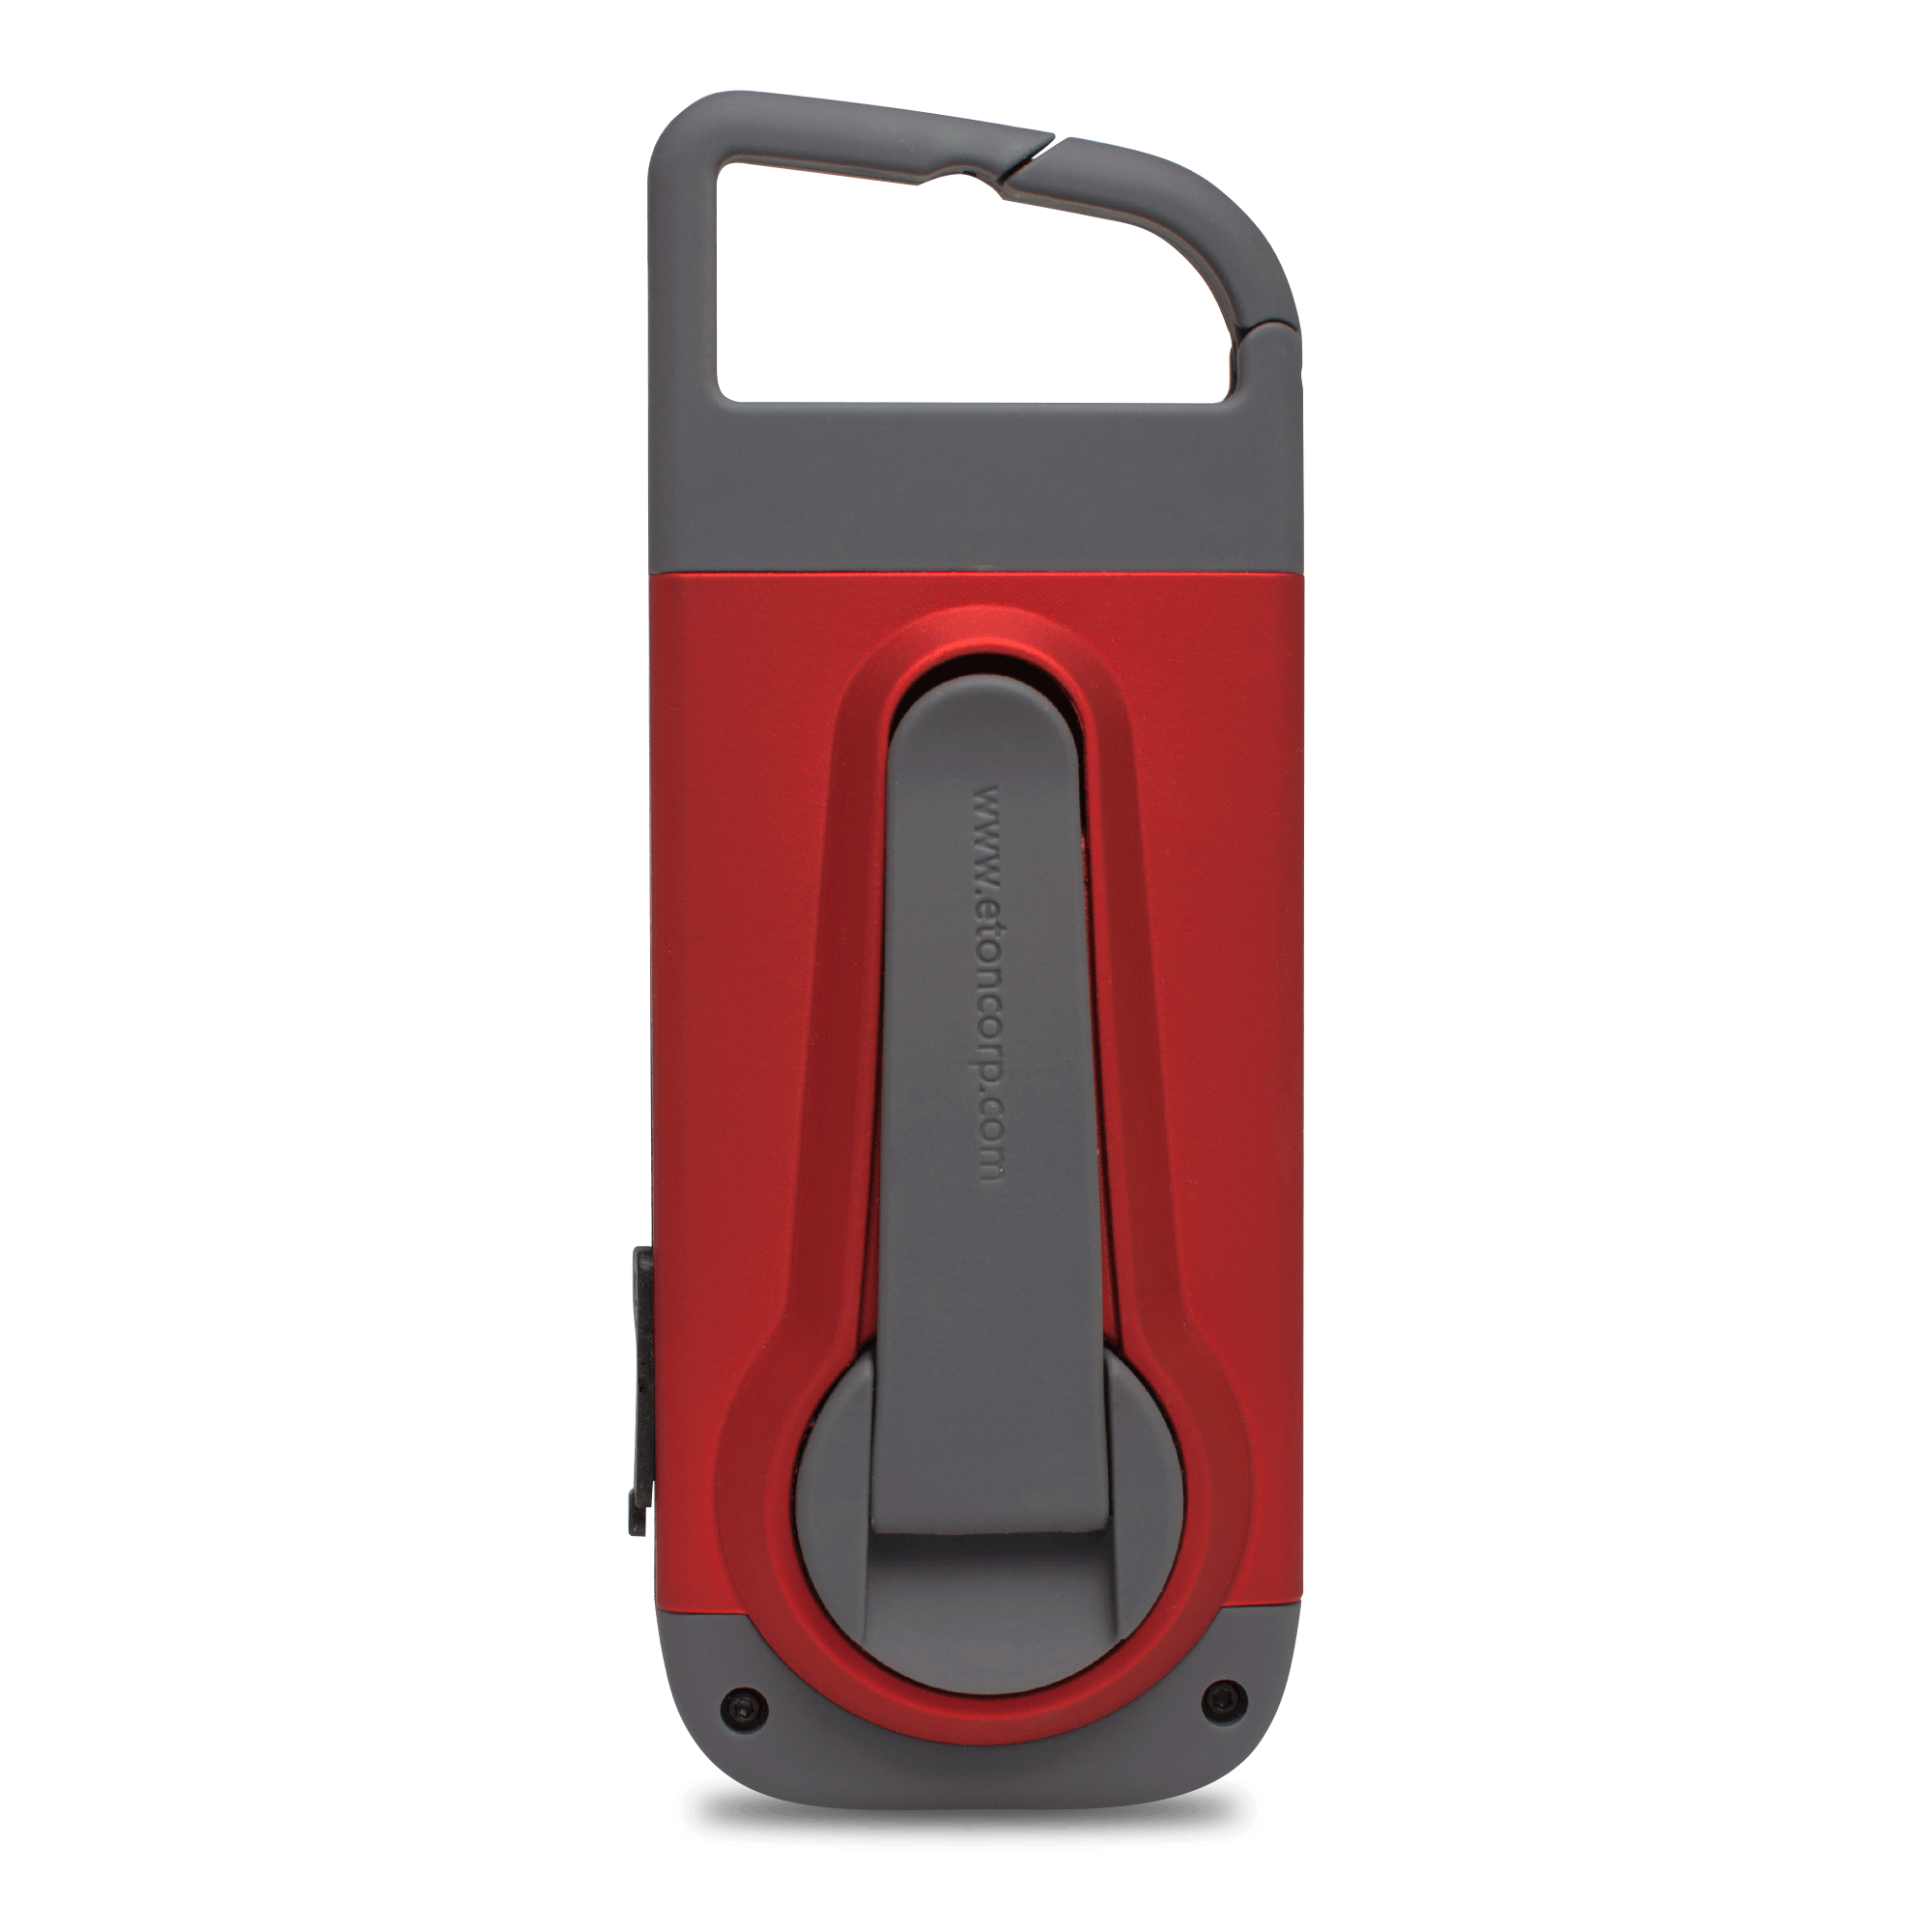 The American Red Cross Clipray Crank-Powered Clip-On Flashlight And Smartphone